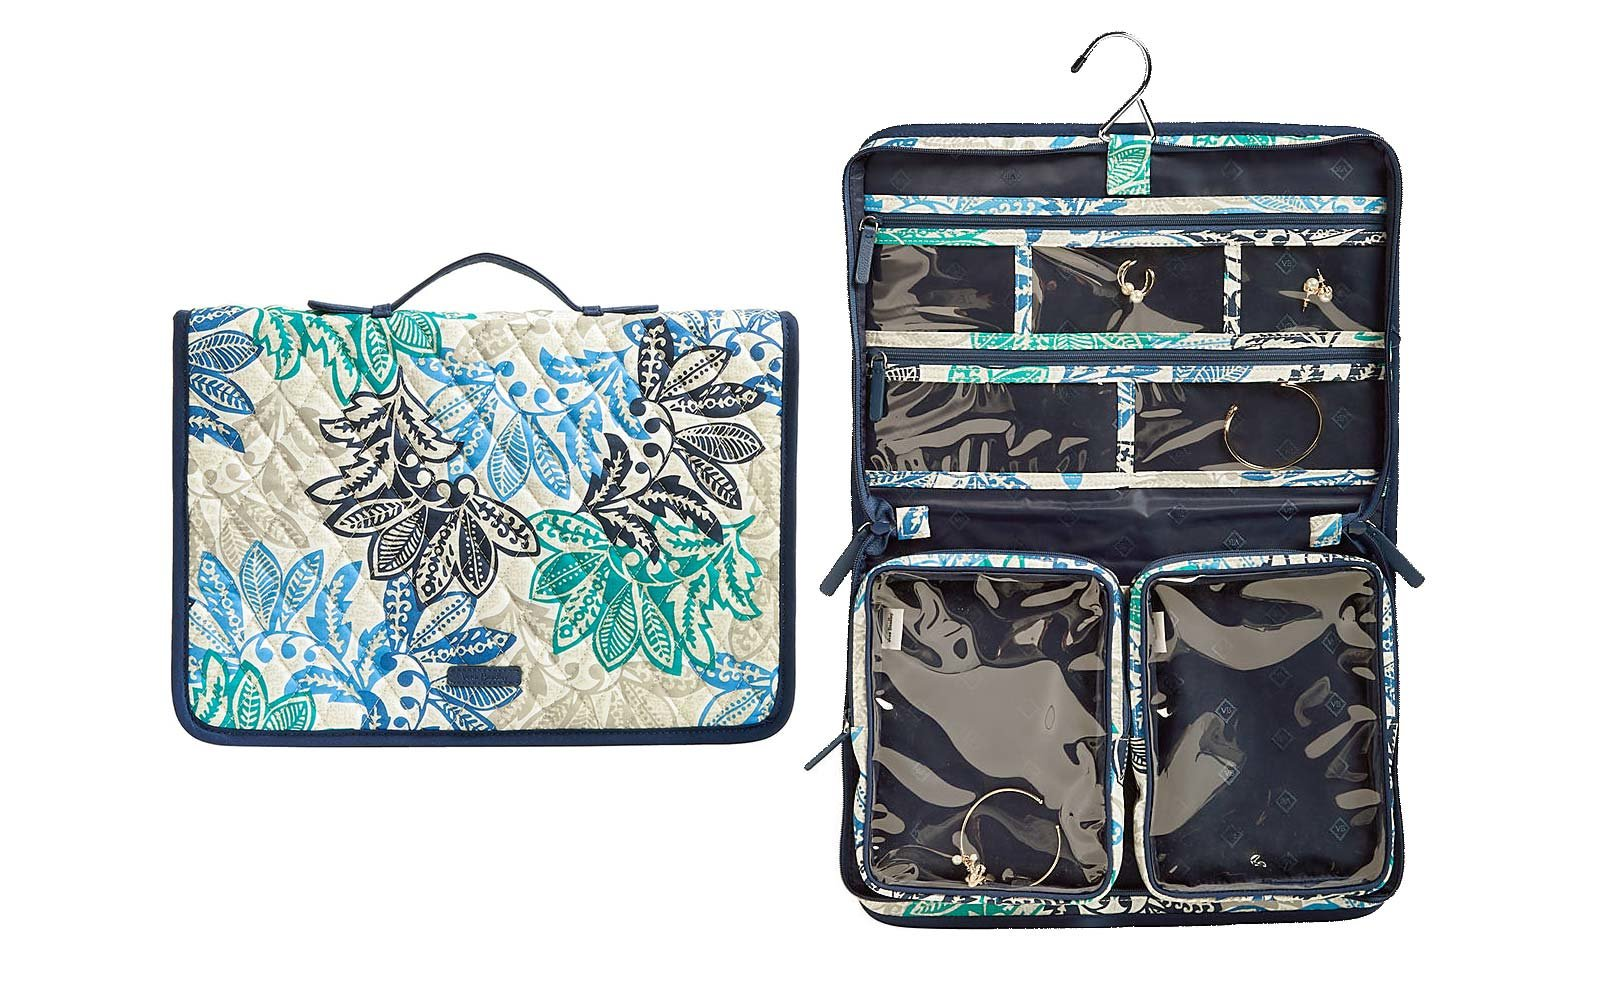 travel jewelry case vera bradley 1000 Jewelry Box